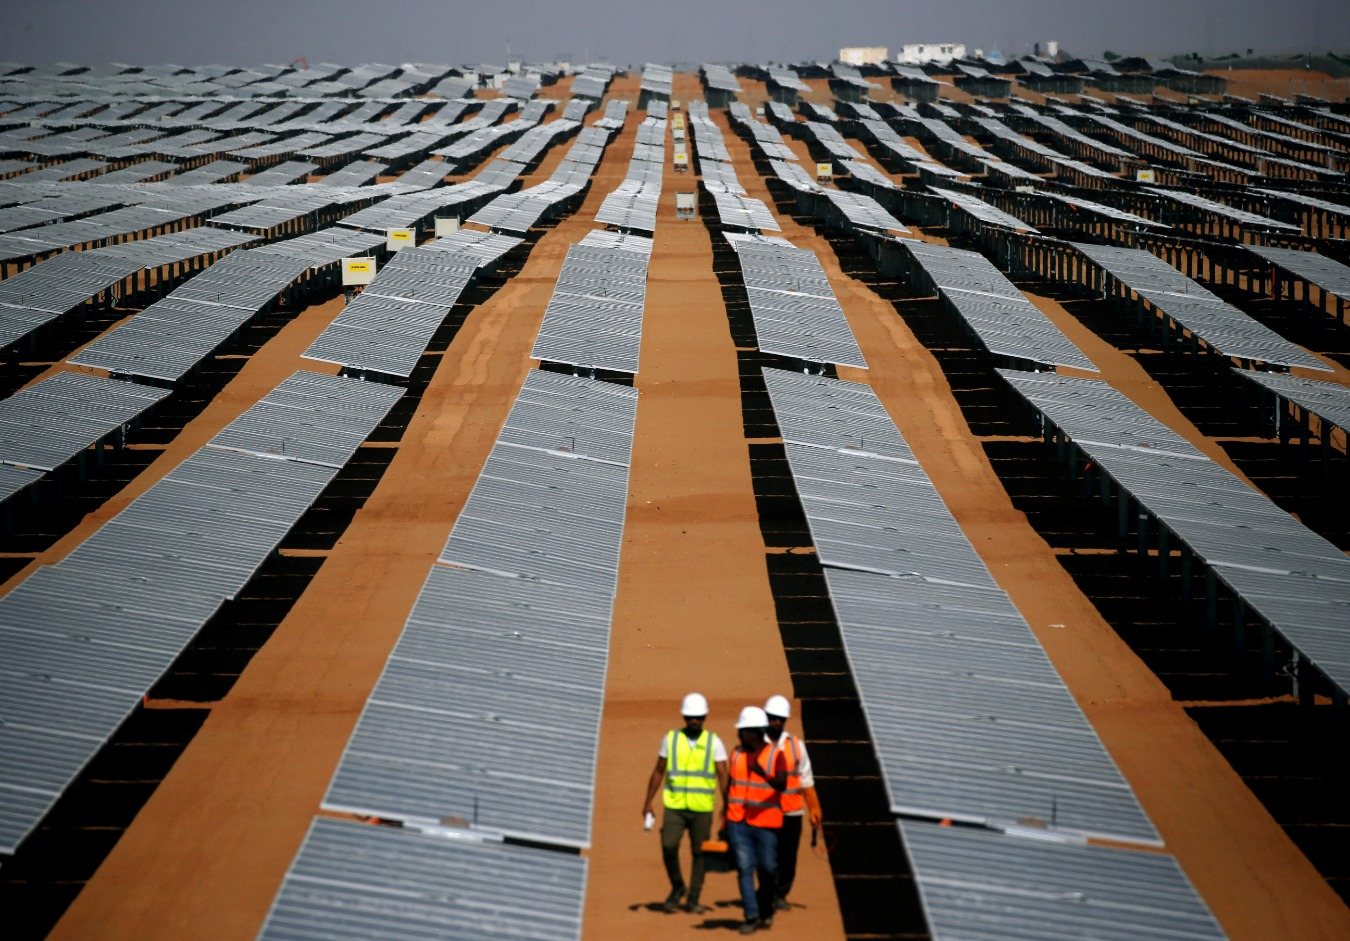 Poor Economy Of Scale: Renewable Energy Is About More Than Government Policy